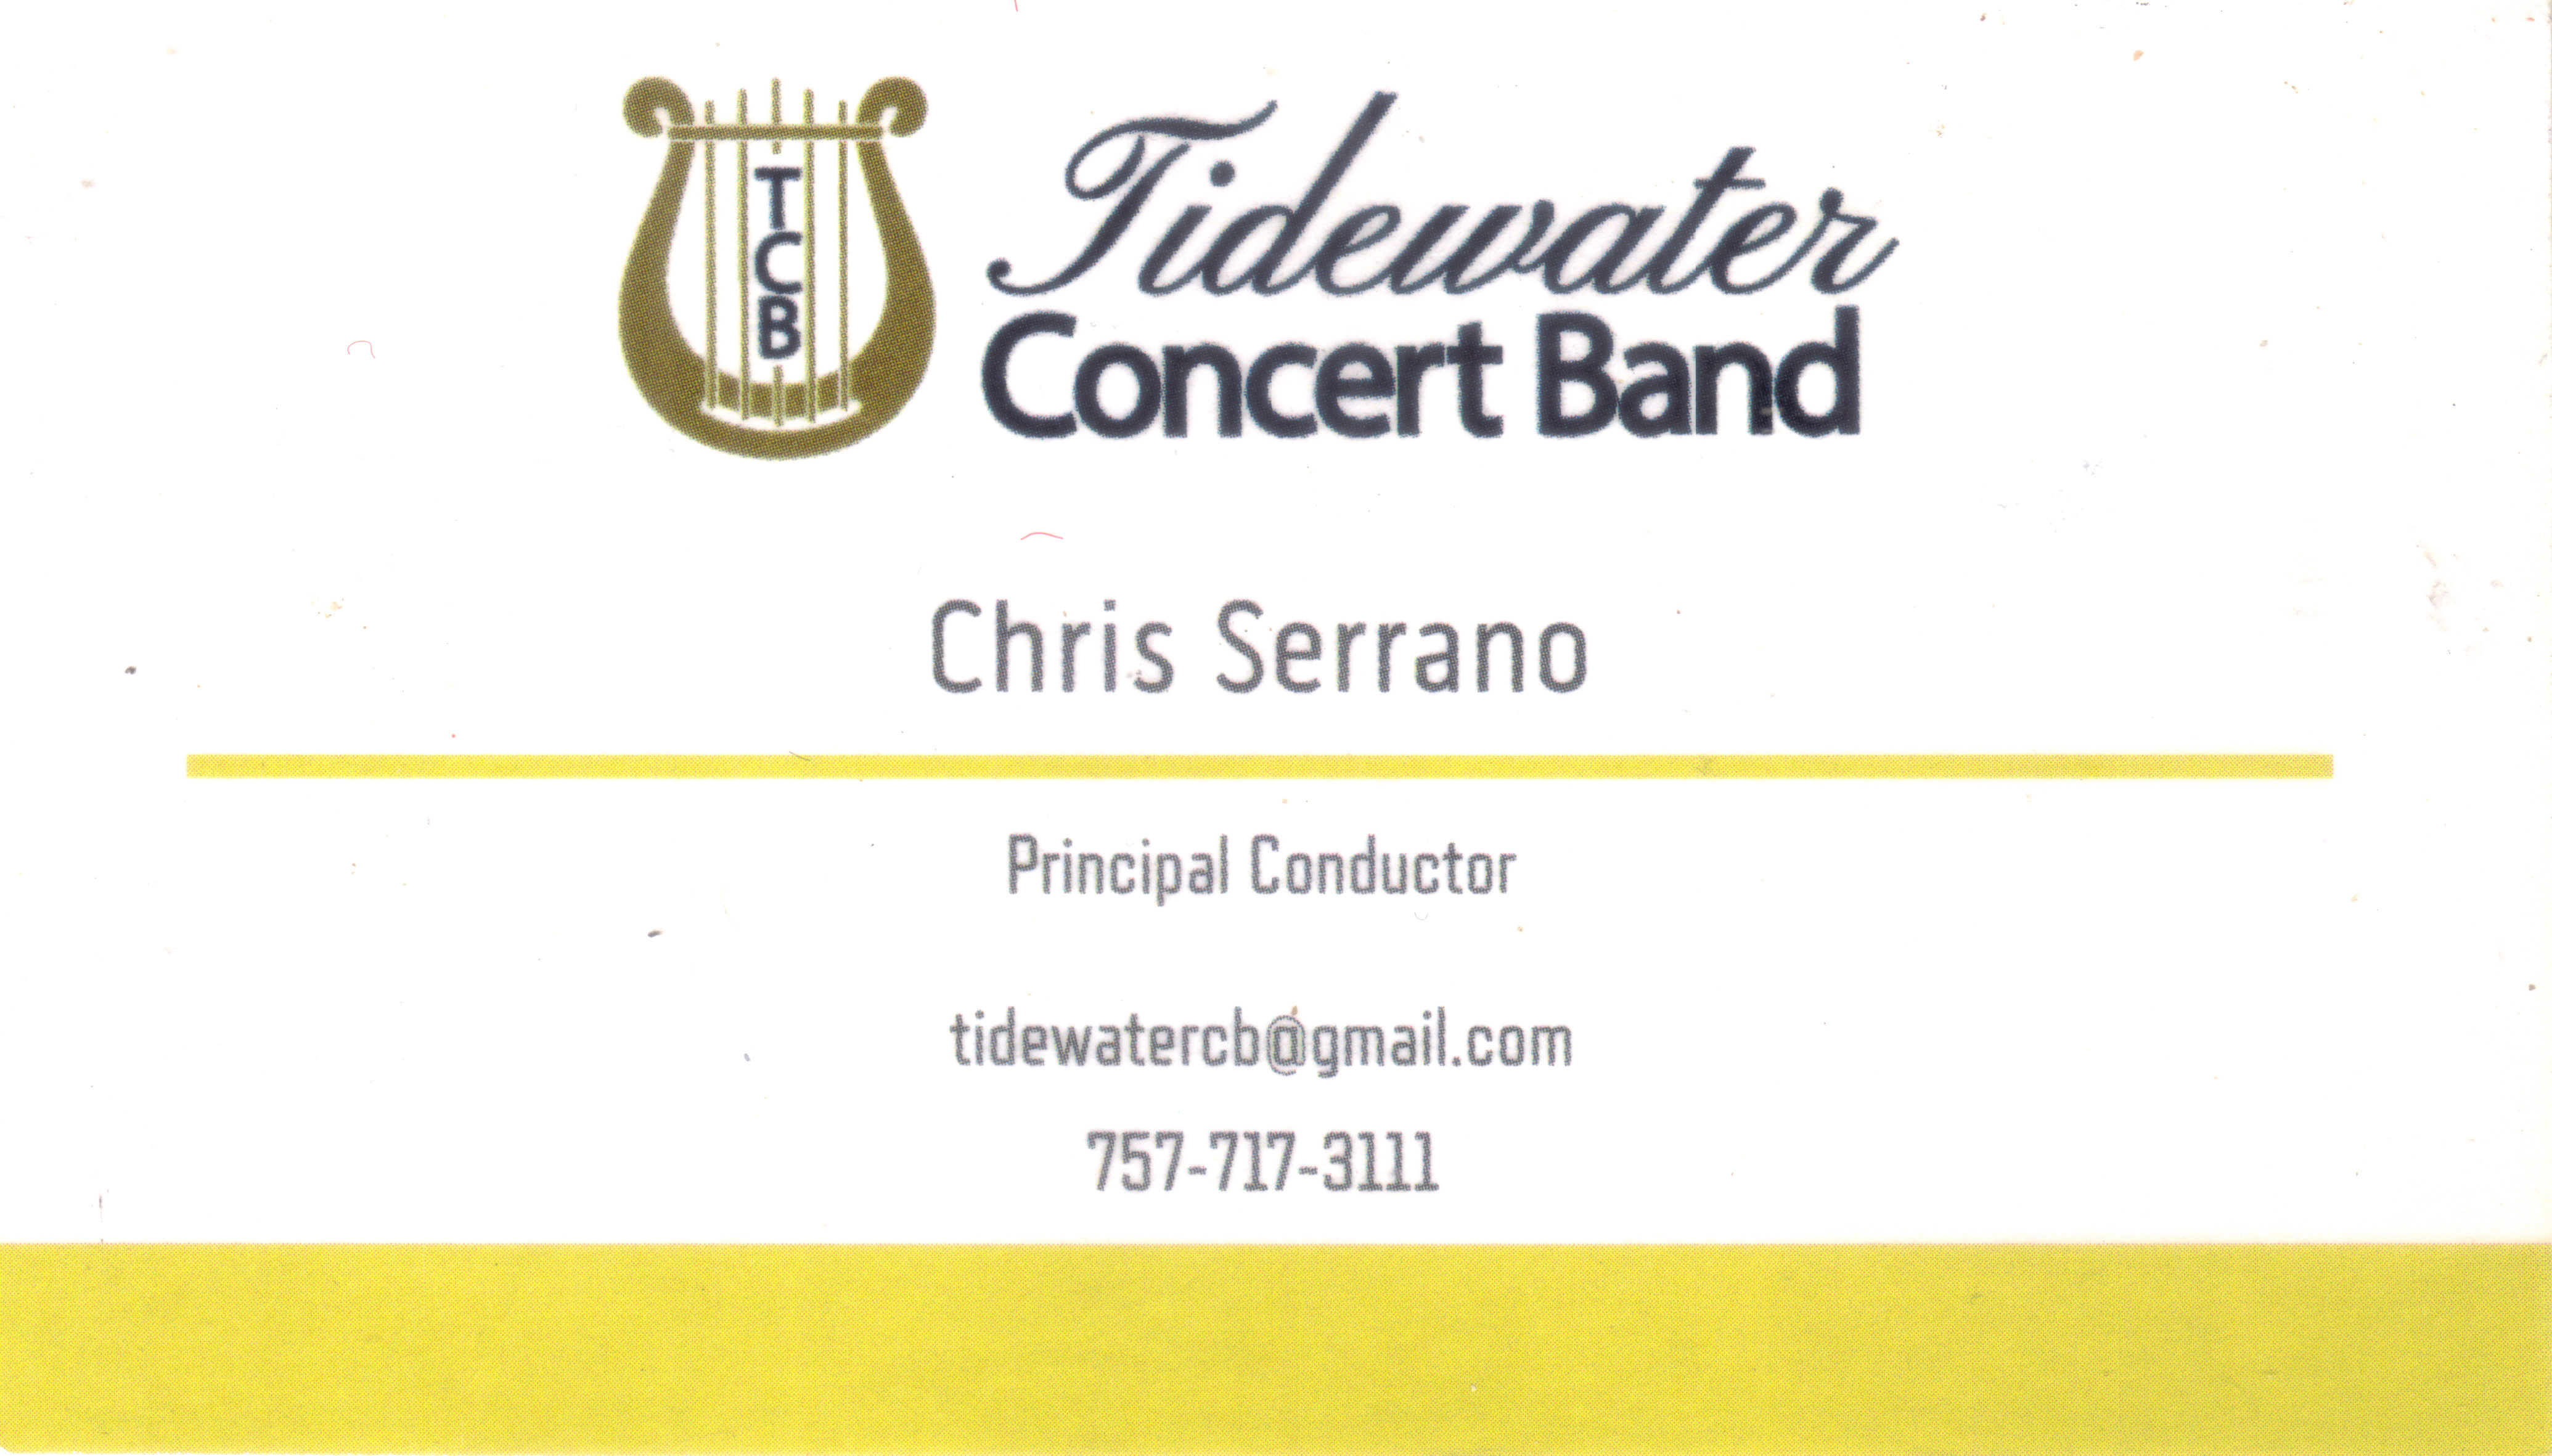 Tidewater Concert Band